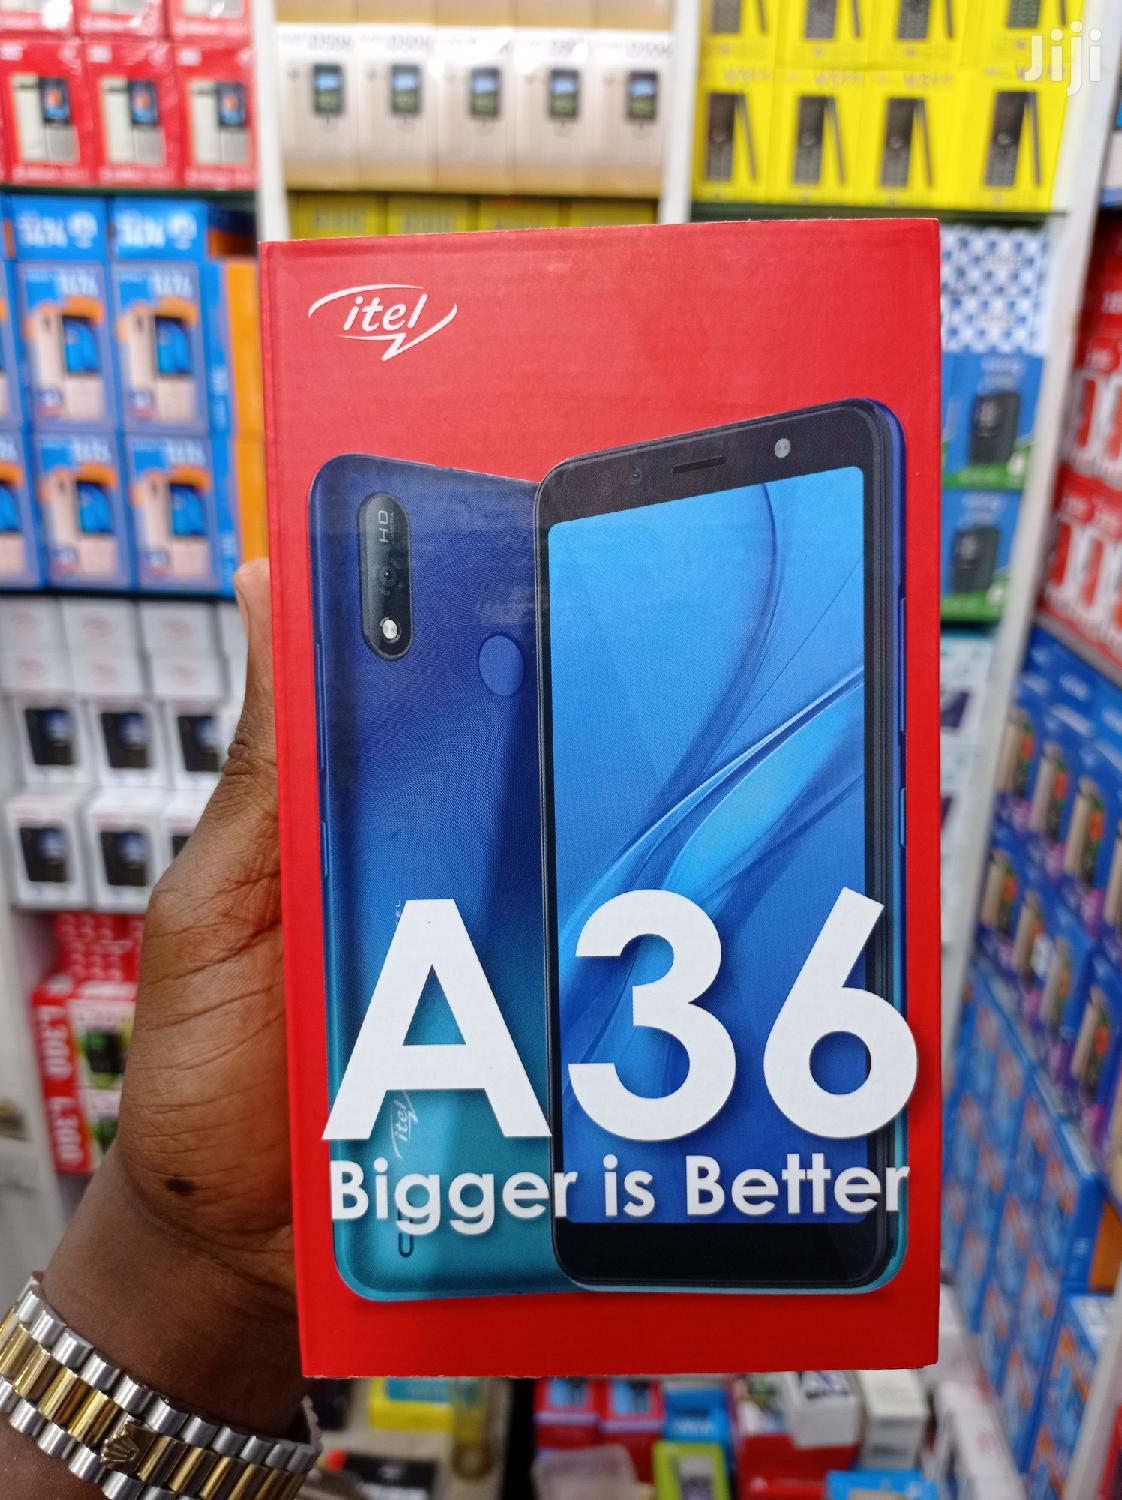 New Itel A33 16 GB Black